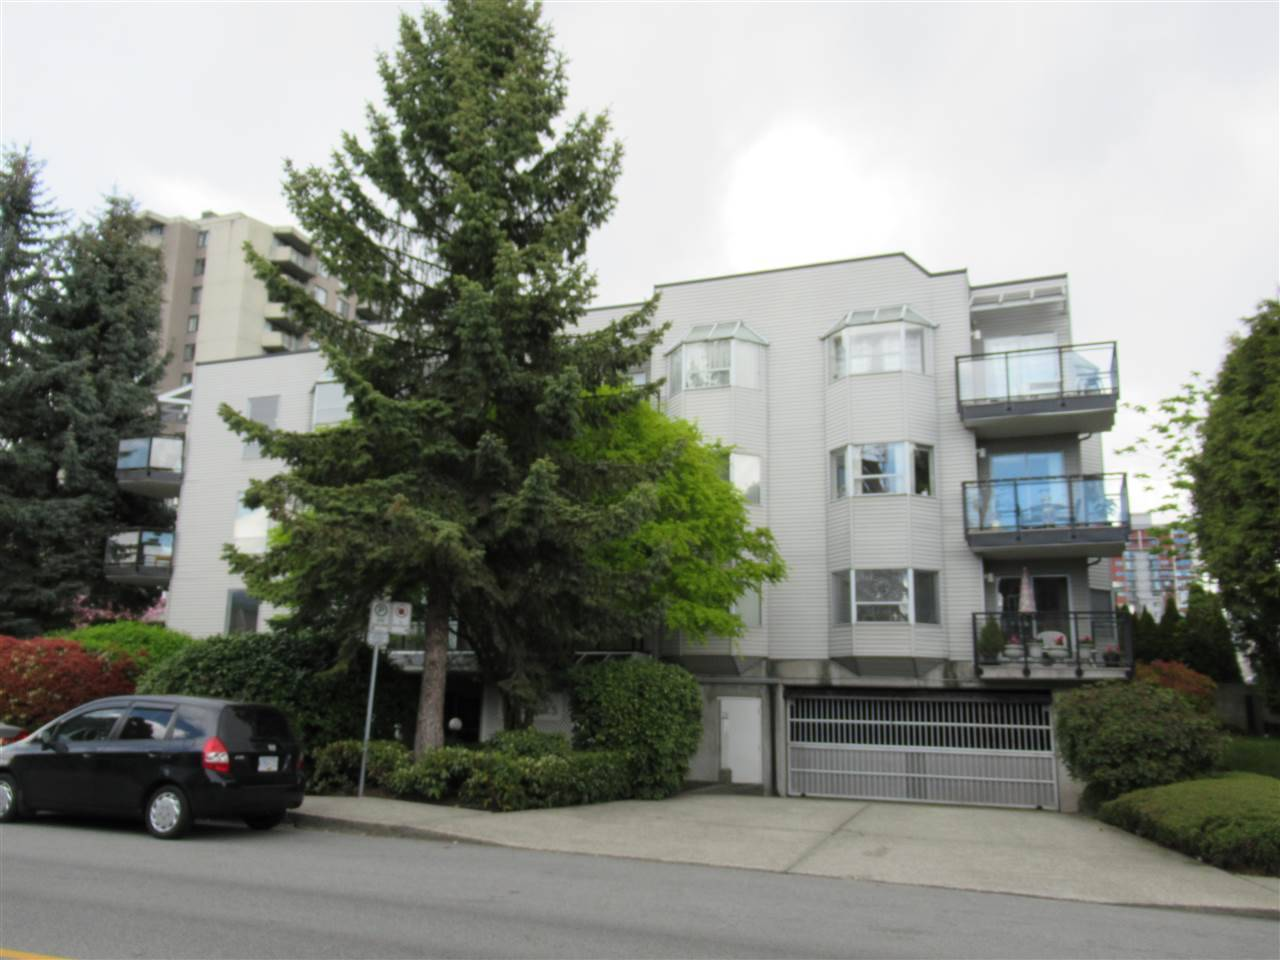 Buliding: 1550 Chesterfield Avenue, North Vancouver, BC